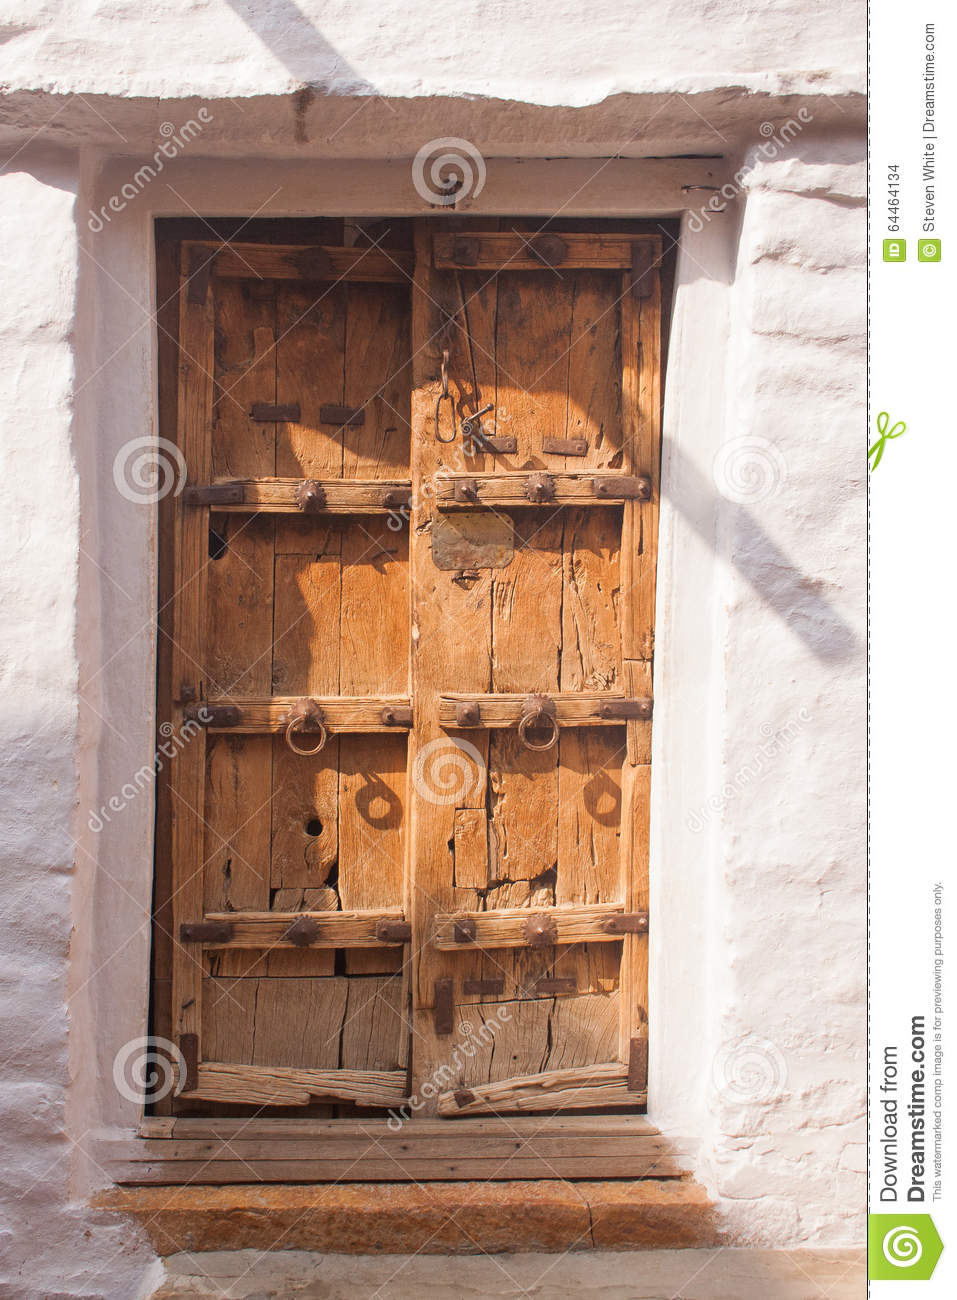 Traditional Indian Wooden Door With White Surround Stock Photo Image Of Ancient Archway 64464134